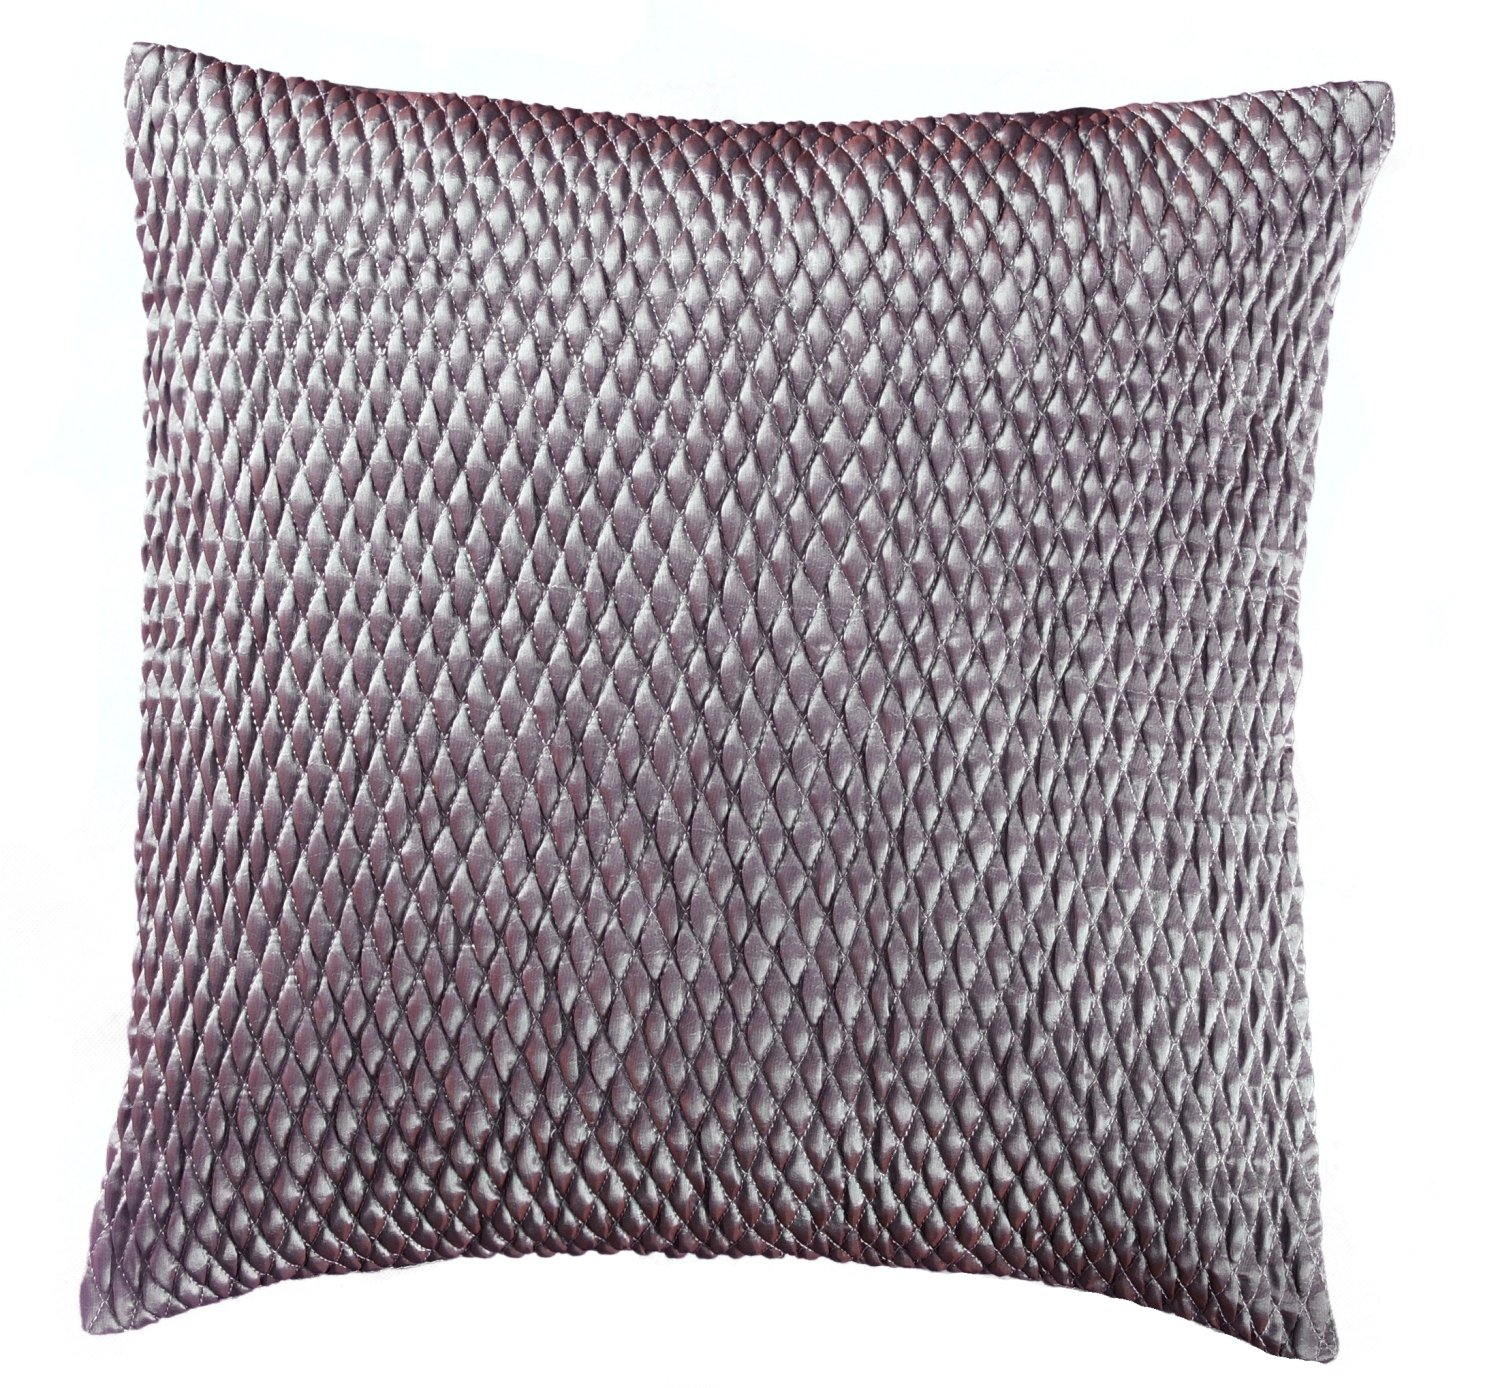 Loft Collection Gathered Sateen Diamond Decorative Pillow Replacement Cover, Spa Blue by Loft Collection (Image #1)